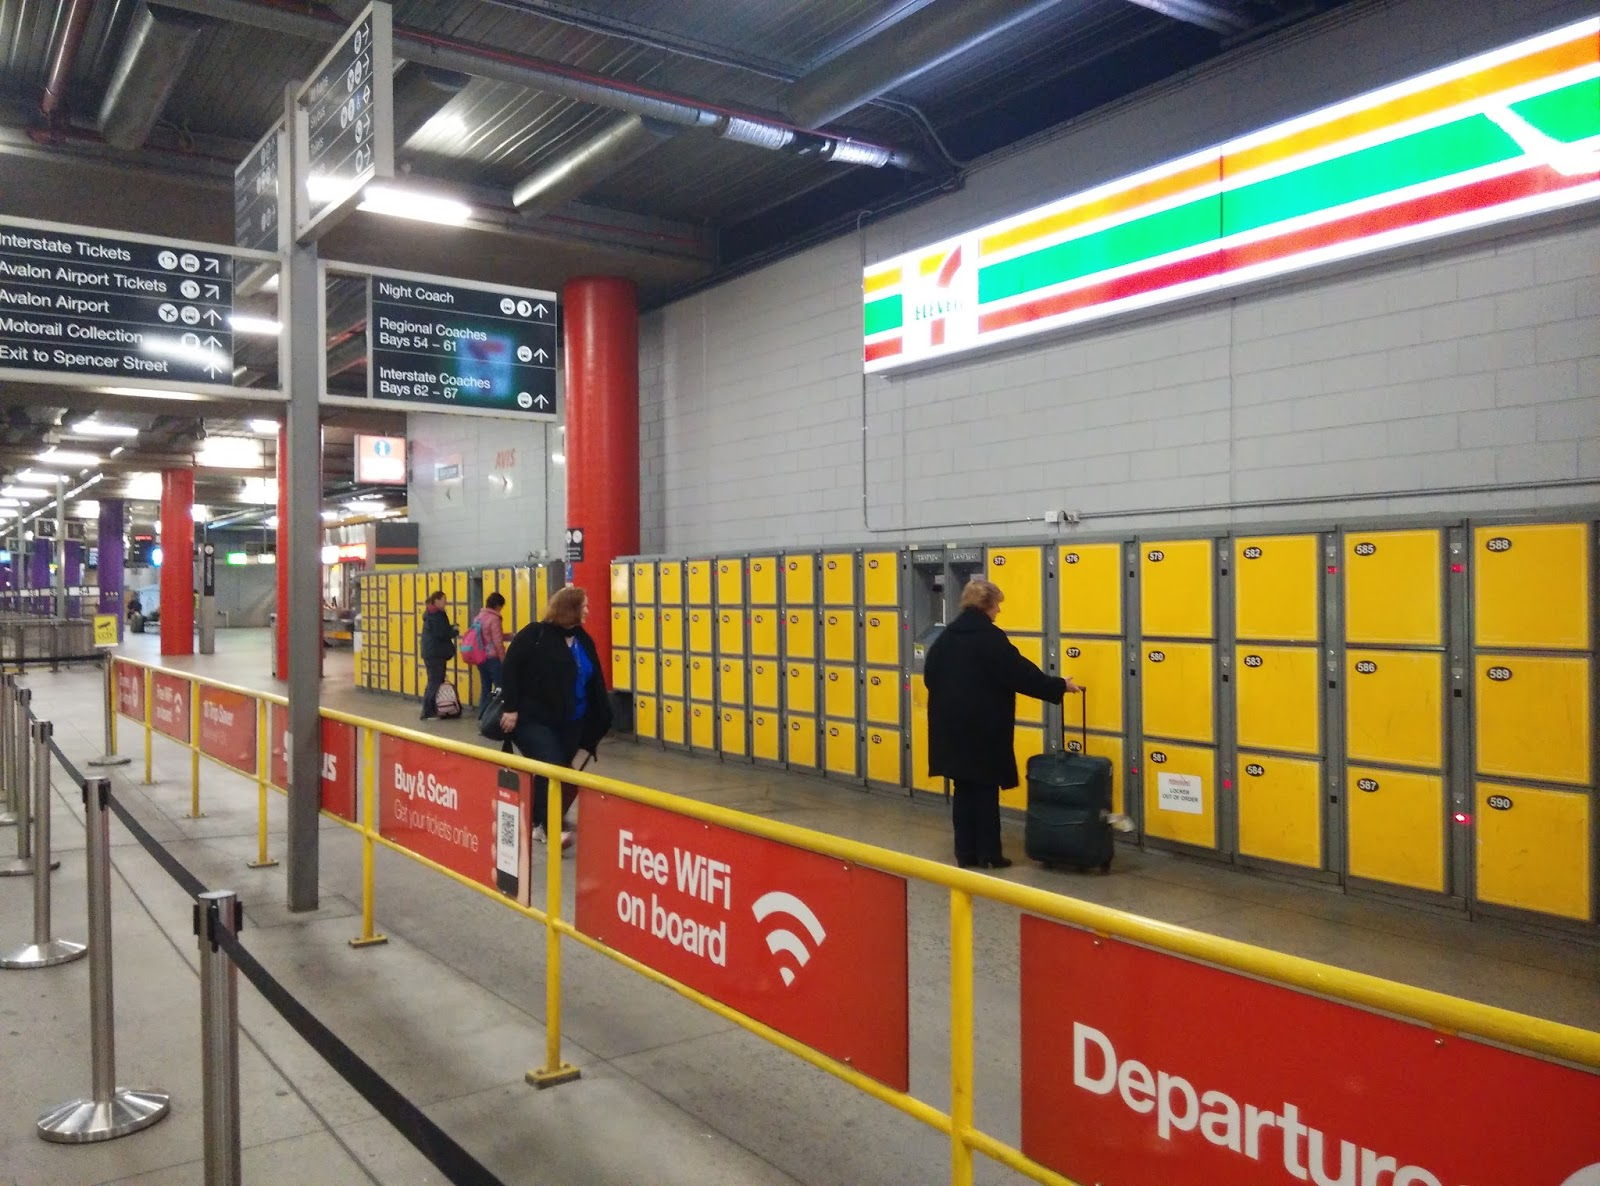 Luggage lockers are available in various sizes through out the station if you wanted to drop it off and not carry it around. Lockers are located within the ... & Southern Cross Railway Station Melbourne u2013 MyTravelGeno